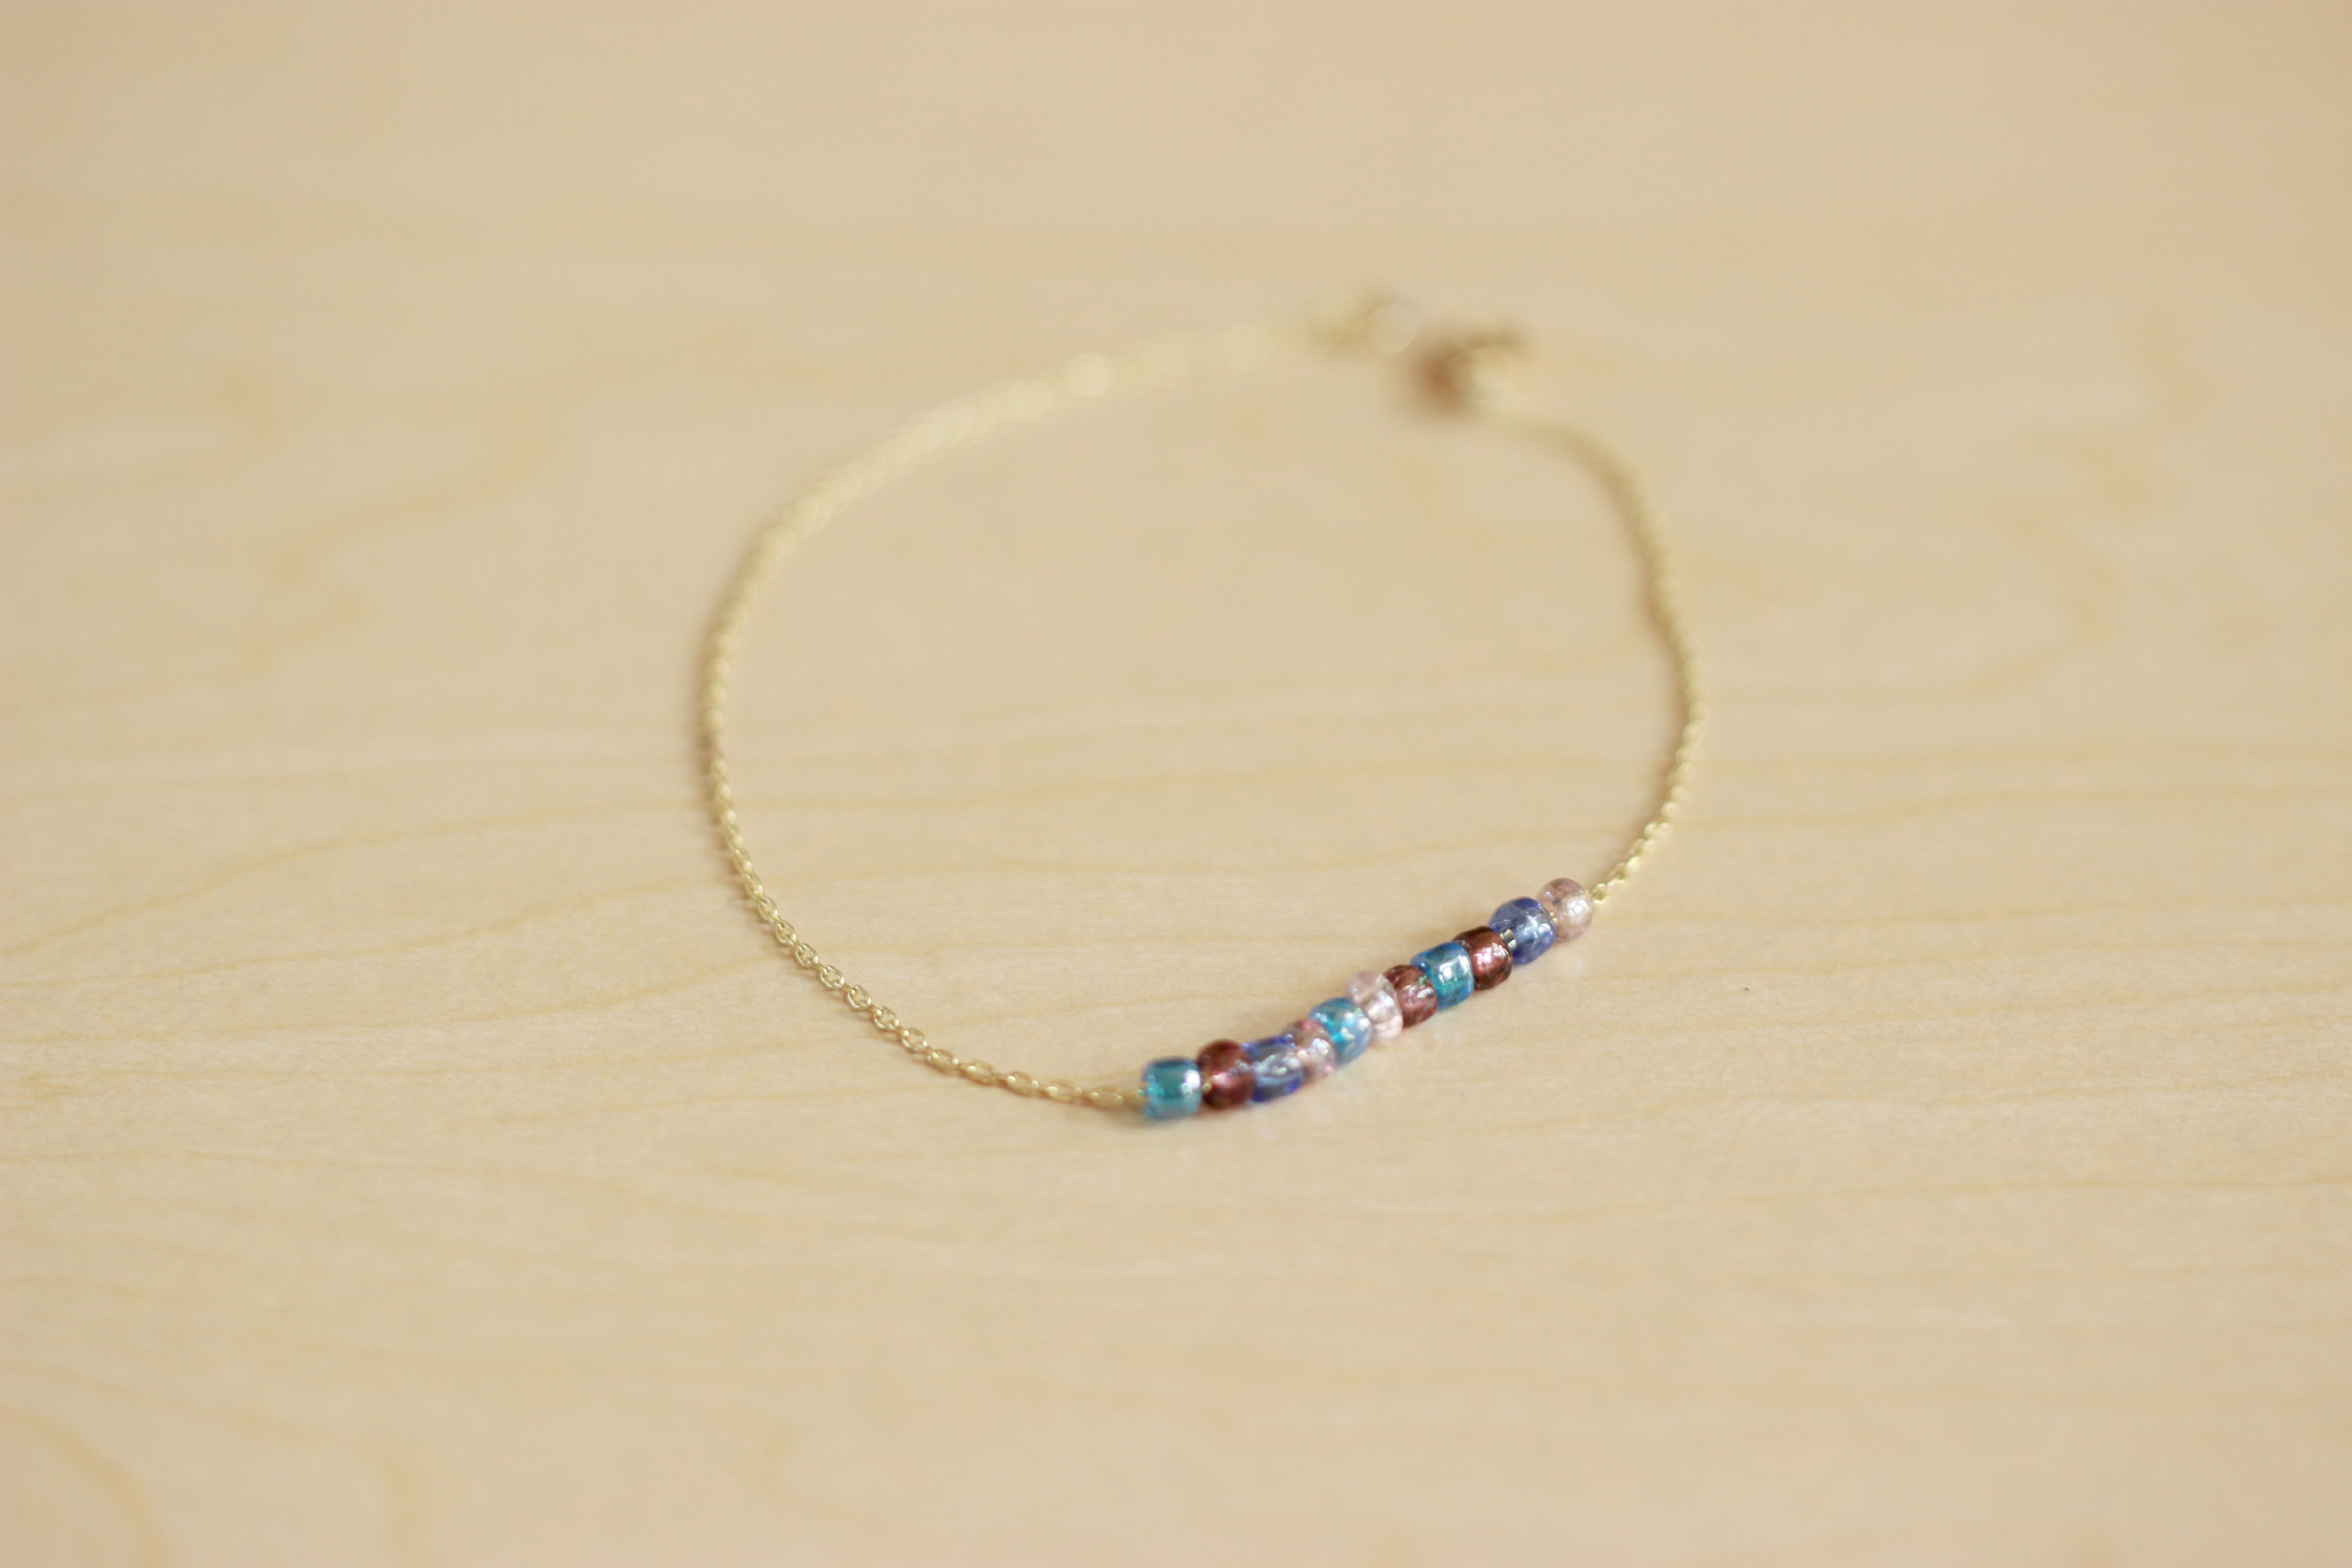 DIY delicate anklet with colored beads